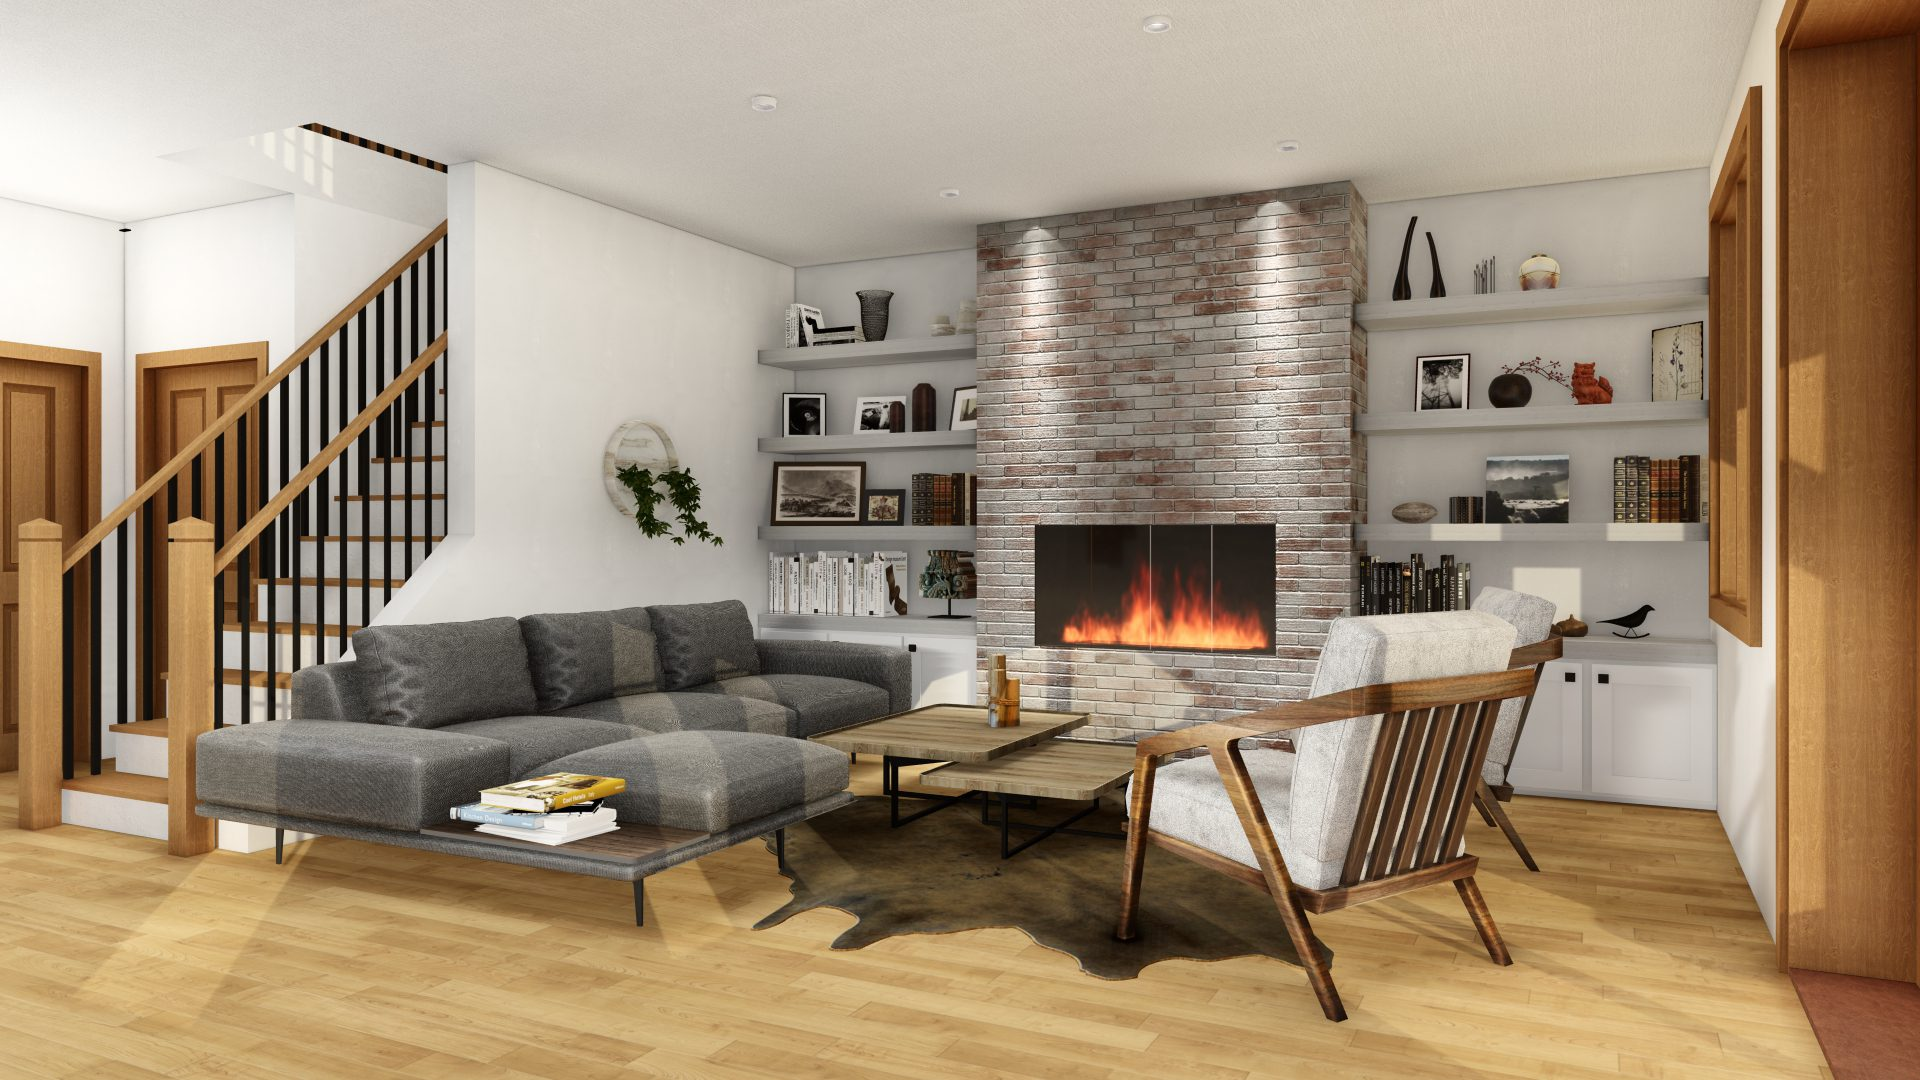 Timber Frame Open Concept House Plans   The Rouge   Normerica   Interior, Basement, Recreation Room